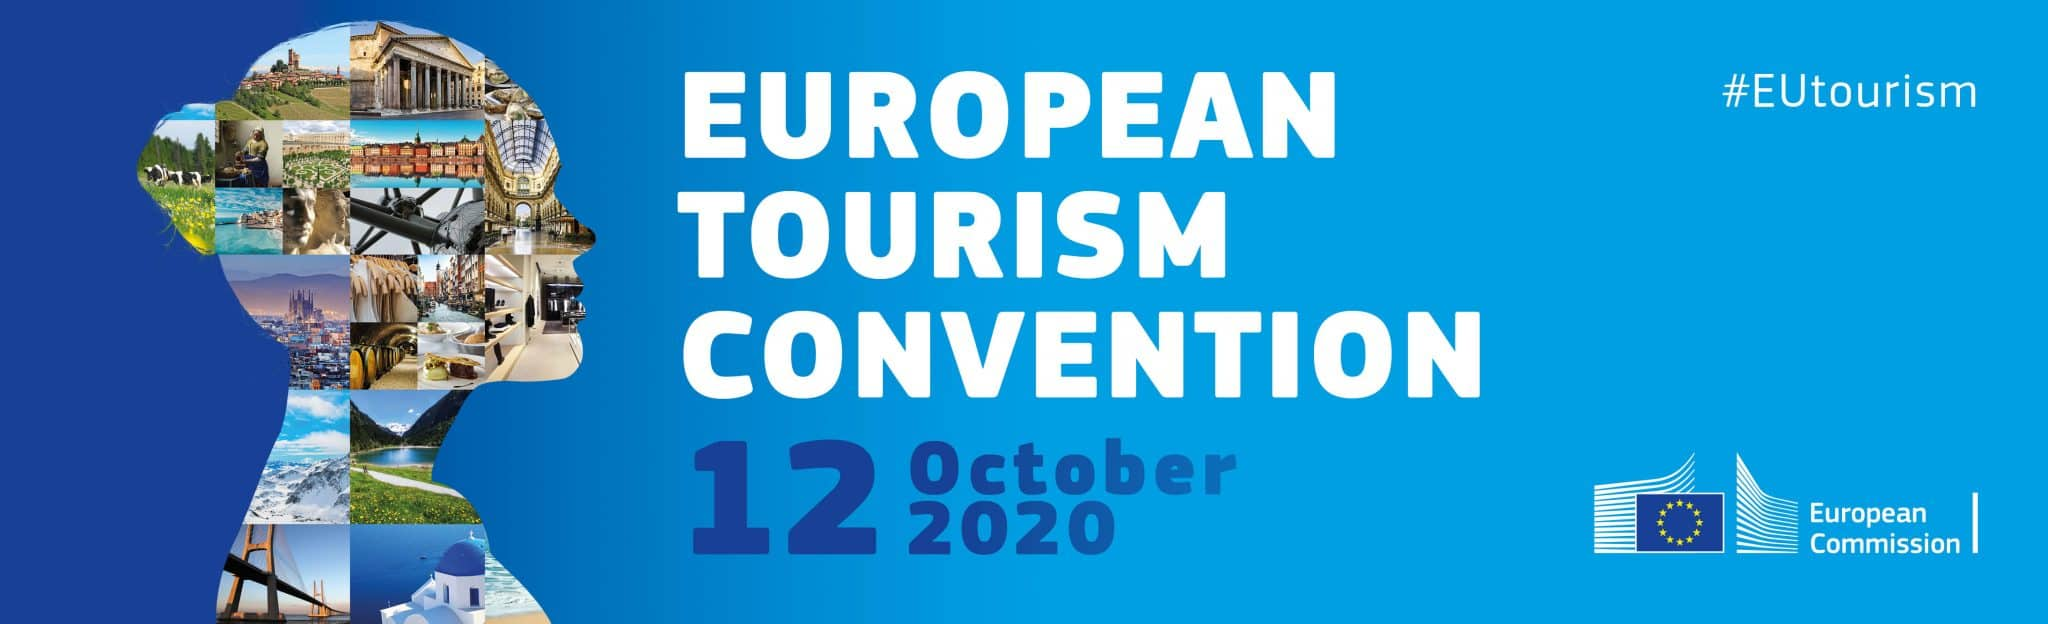 Taking part in the European Tourism Convention